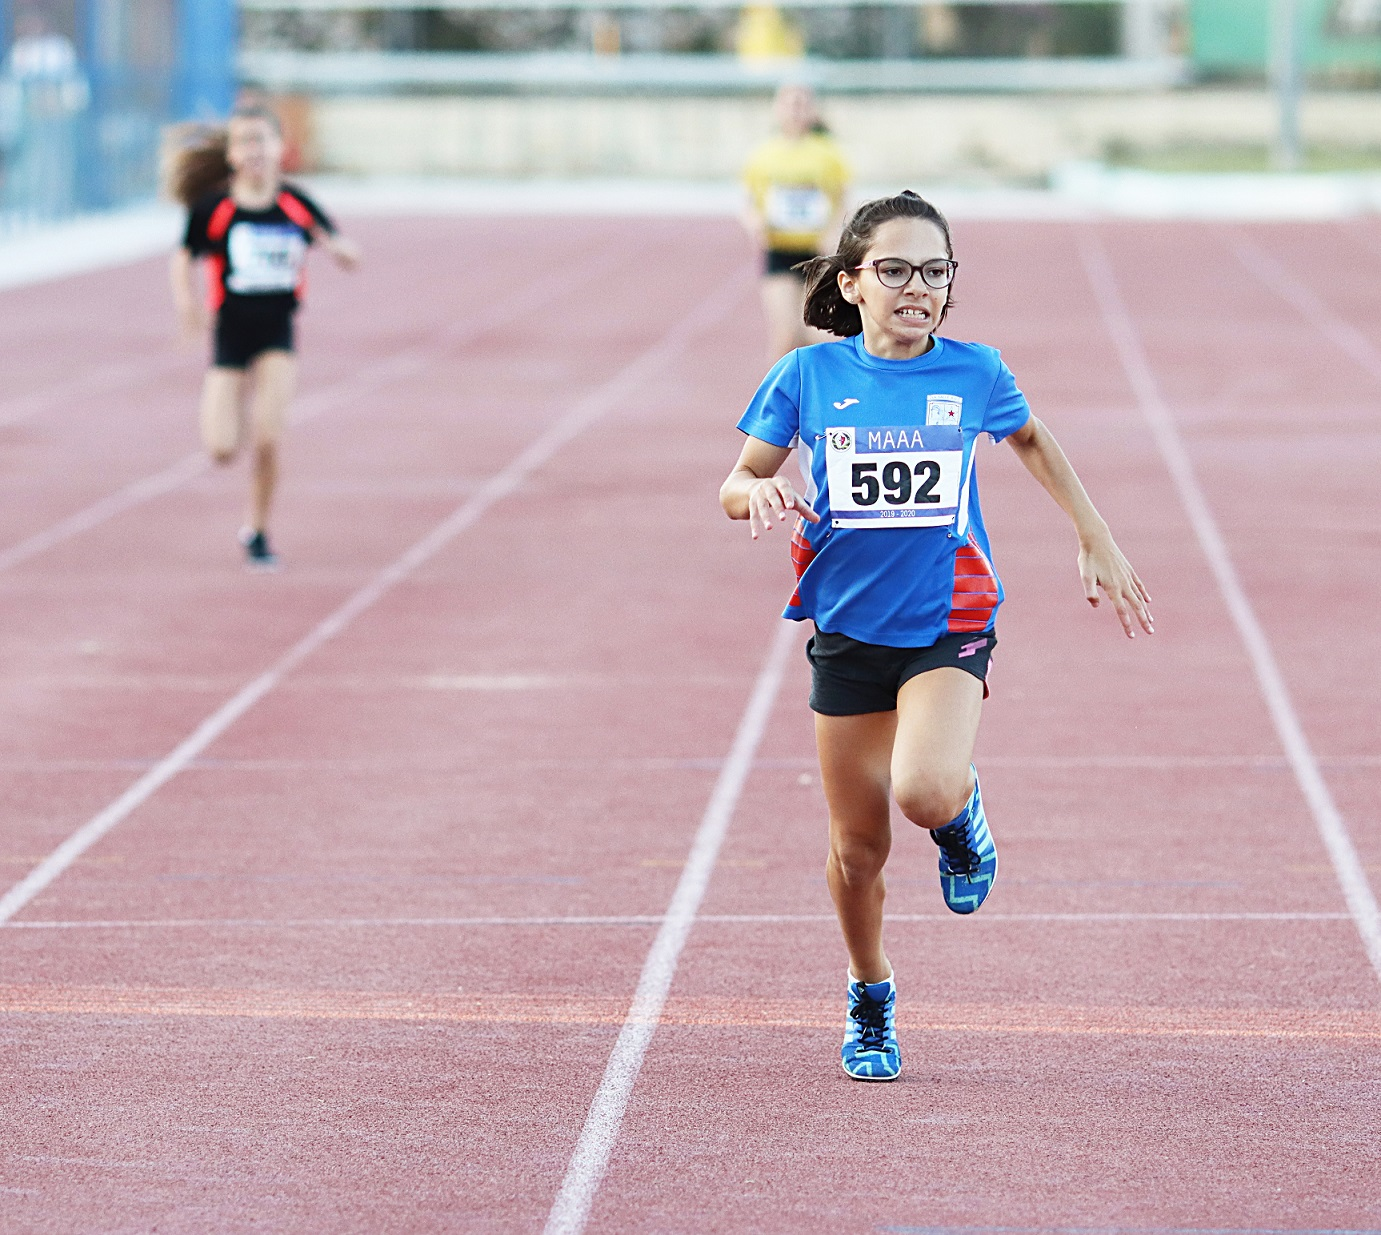 Thea Grech steals the scene with treble in junior MAAA events